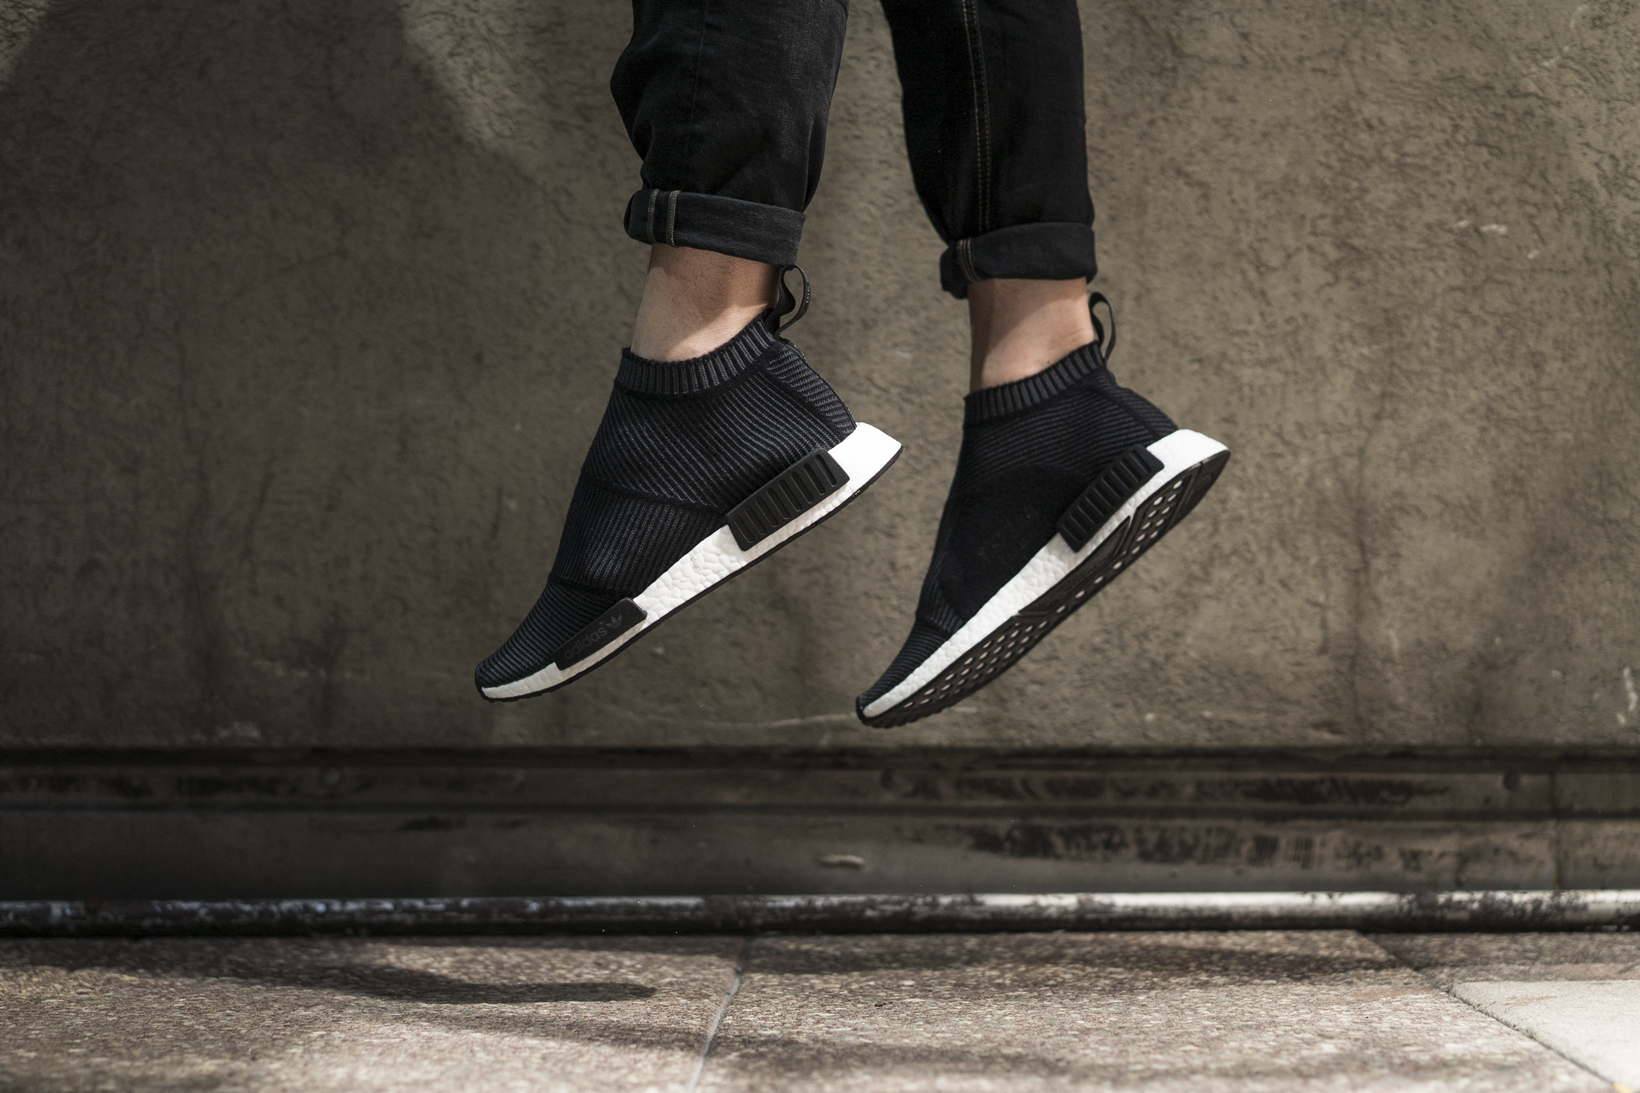 new product 968f0 ec80f UPDATE It seems adidas Originals is releasing these same NMD City Socks in  a Wool Pack with the same S32184 code, only with the inclusion of taped  seams ...